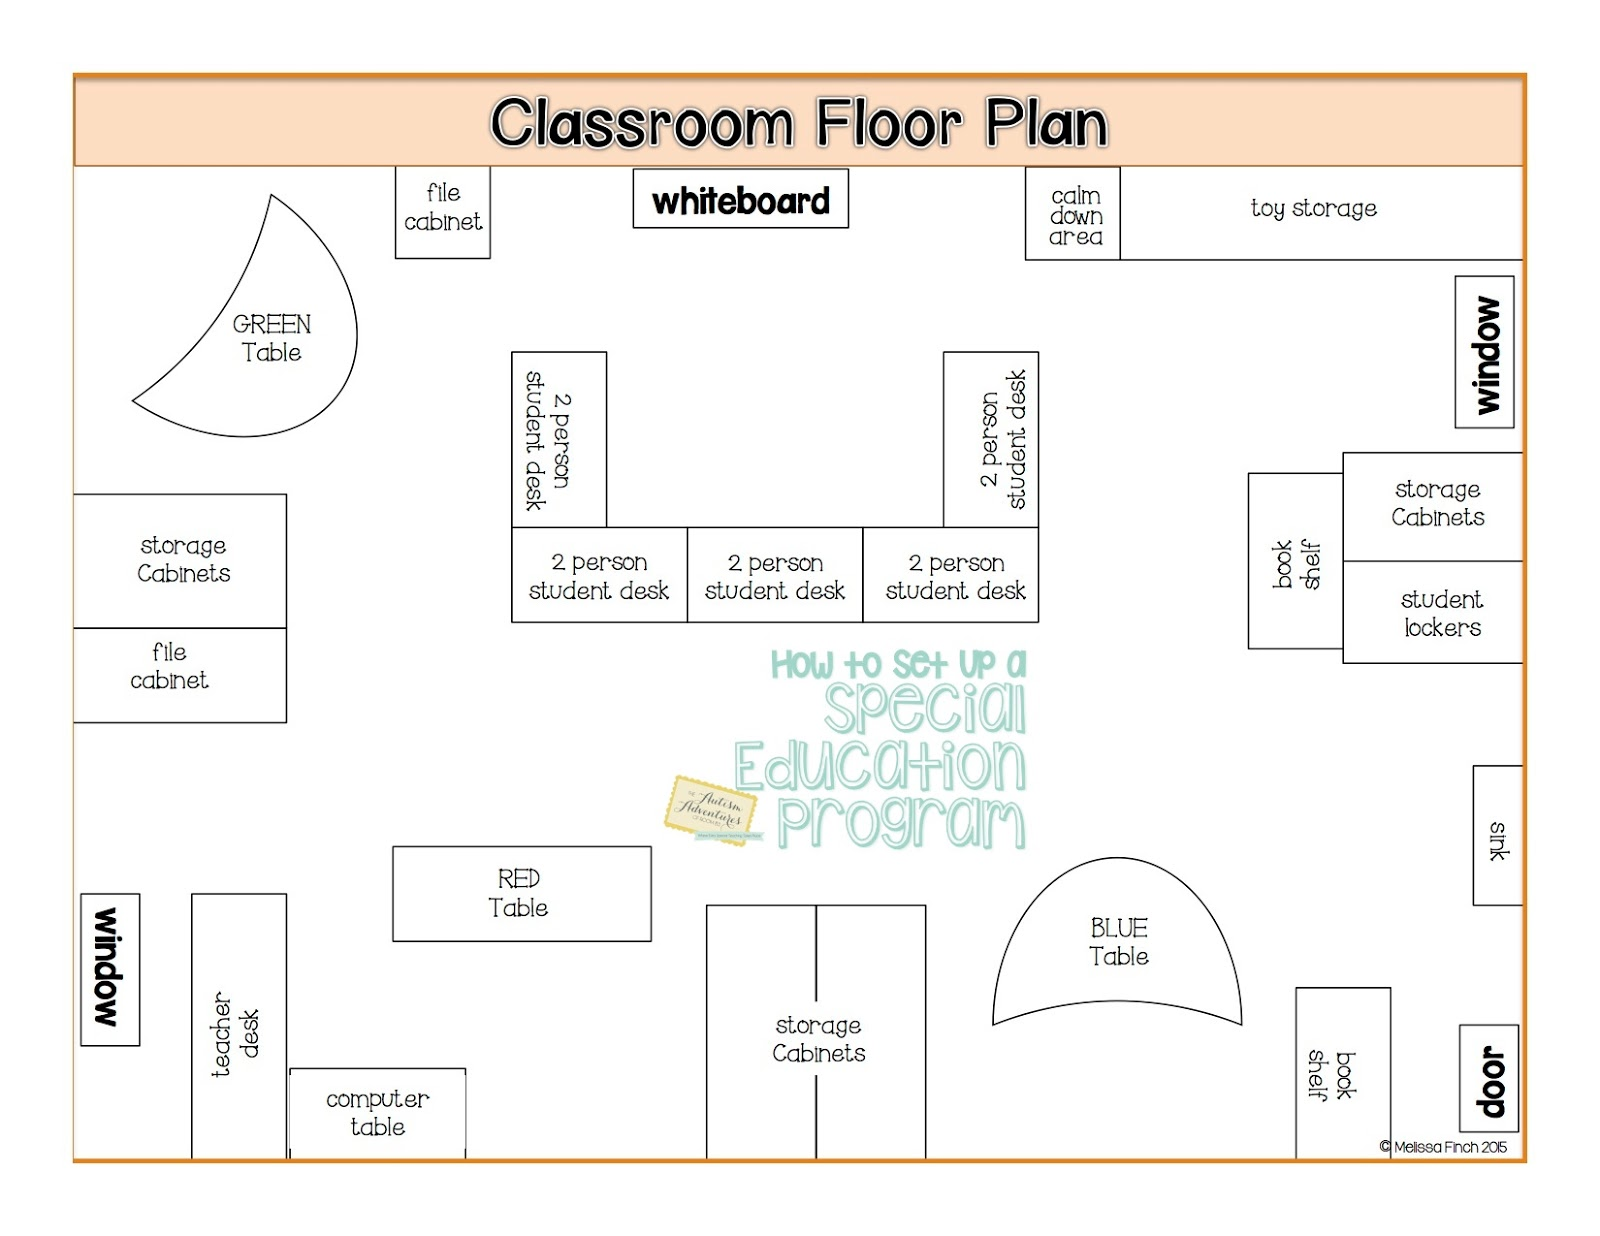 How To Set Up A Special Education Program Floor Plans The